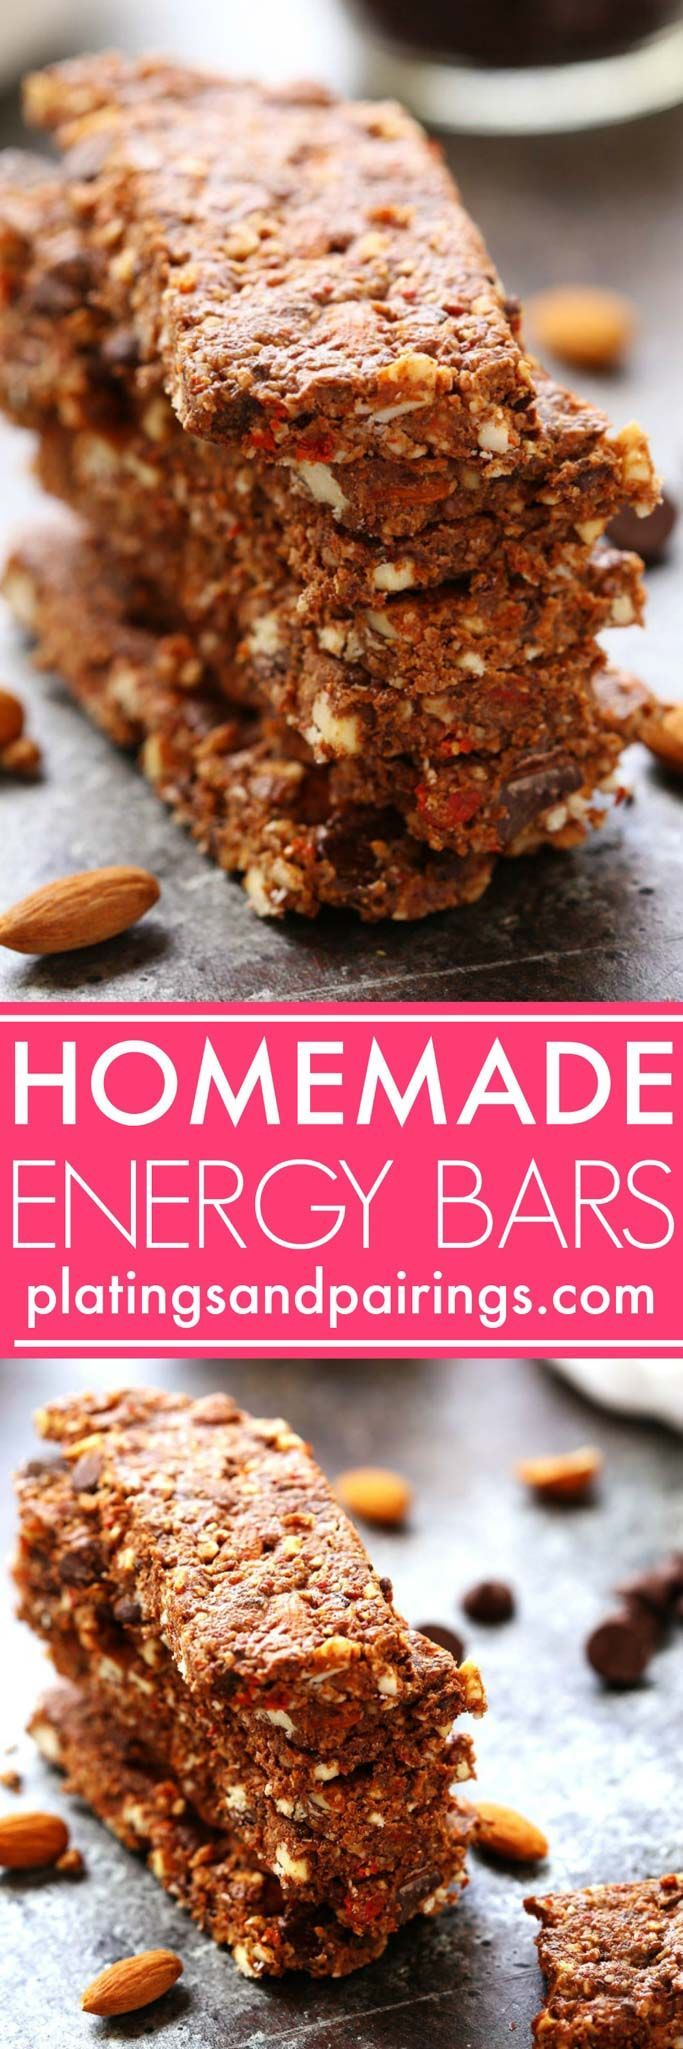 These Homemade Energy Bars with Dark Chocolate & Almonds make a perfect grab-and-go breakfast or healthy snack. They're packed with protein and fiber to keep you energized throughout the day. | platingsandpairings.com